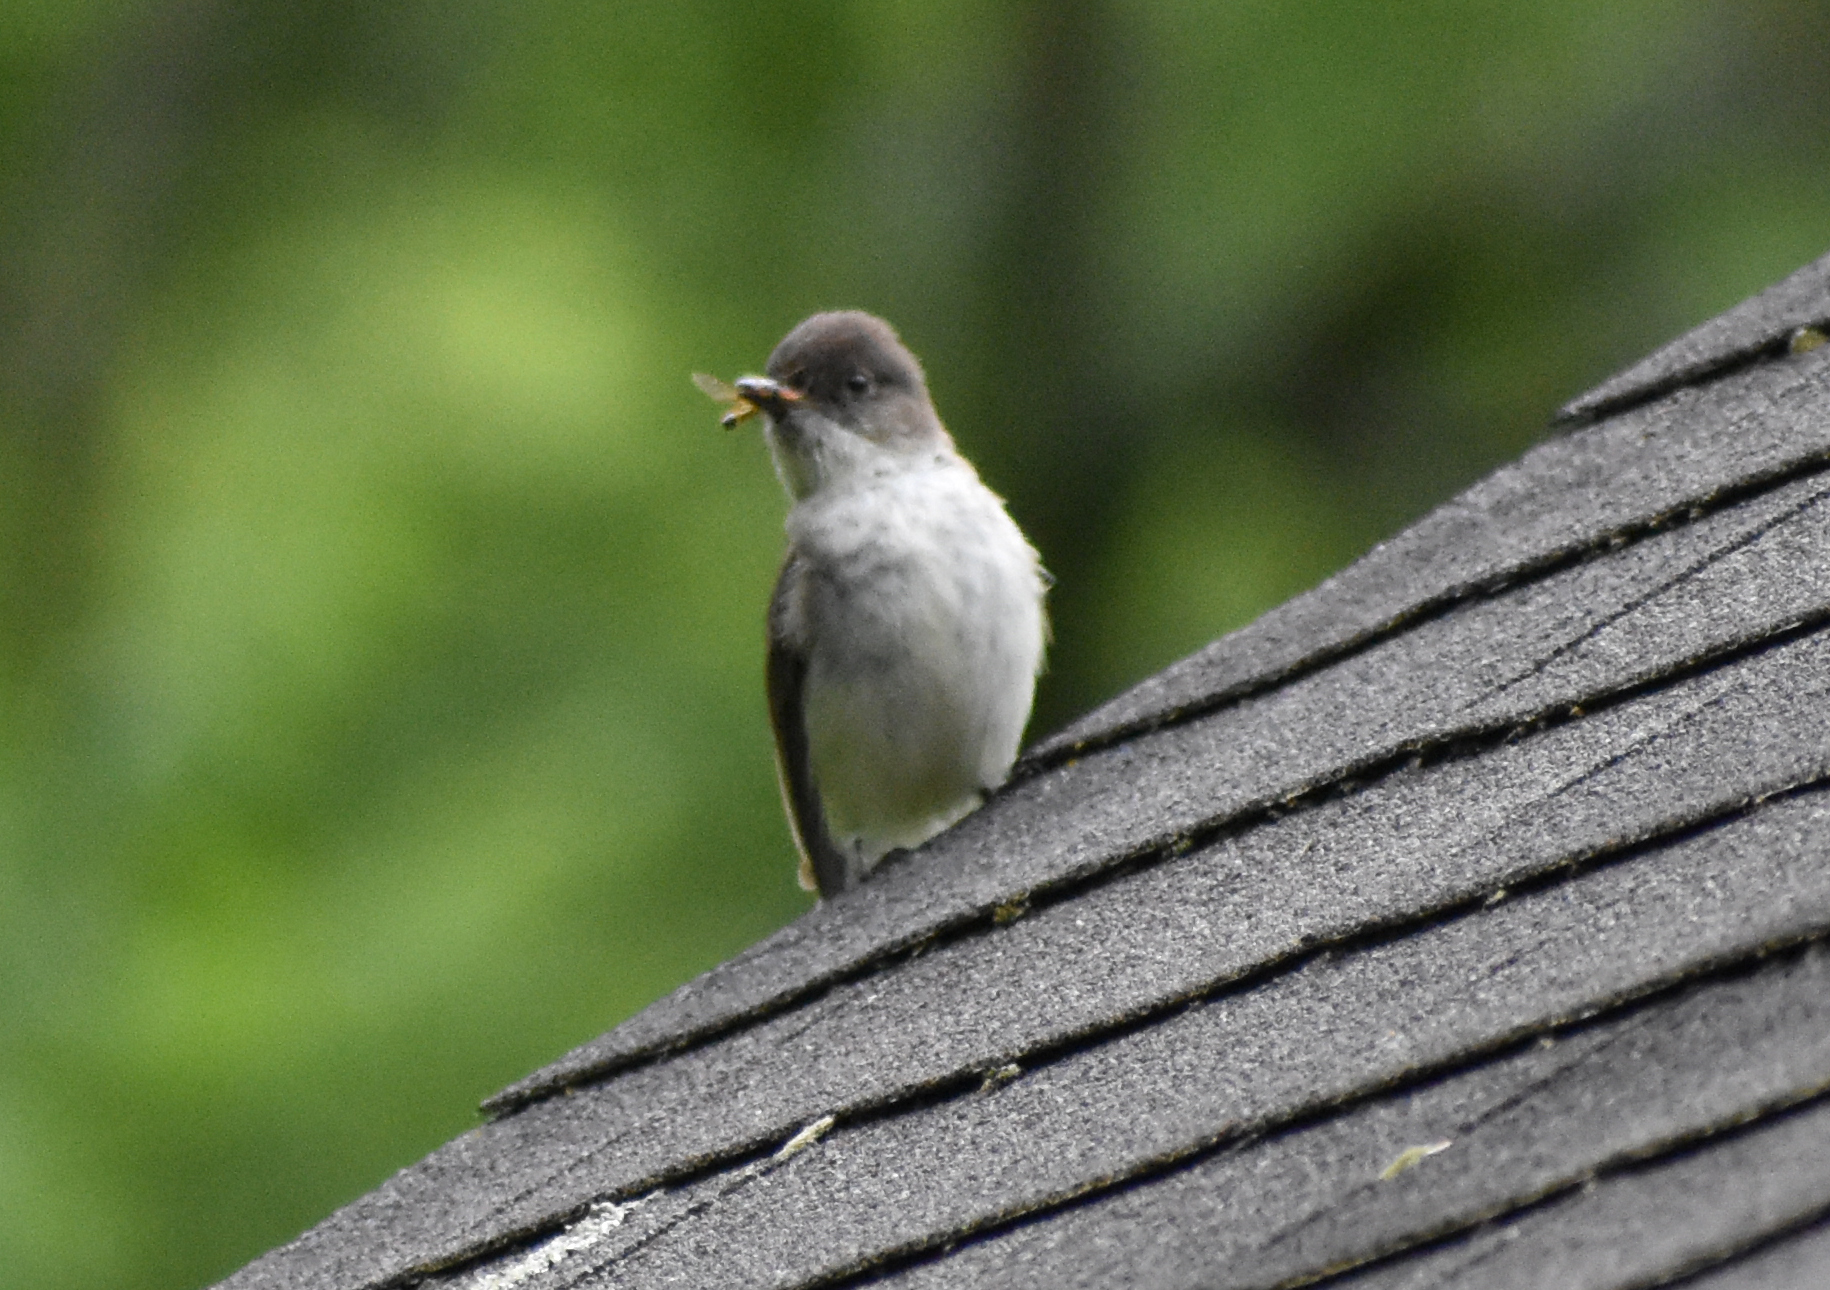 Eastern Phoebe with insect, perched on roof